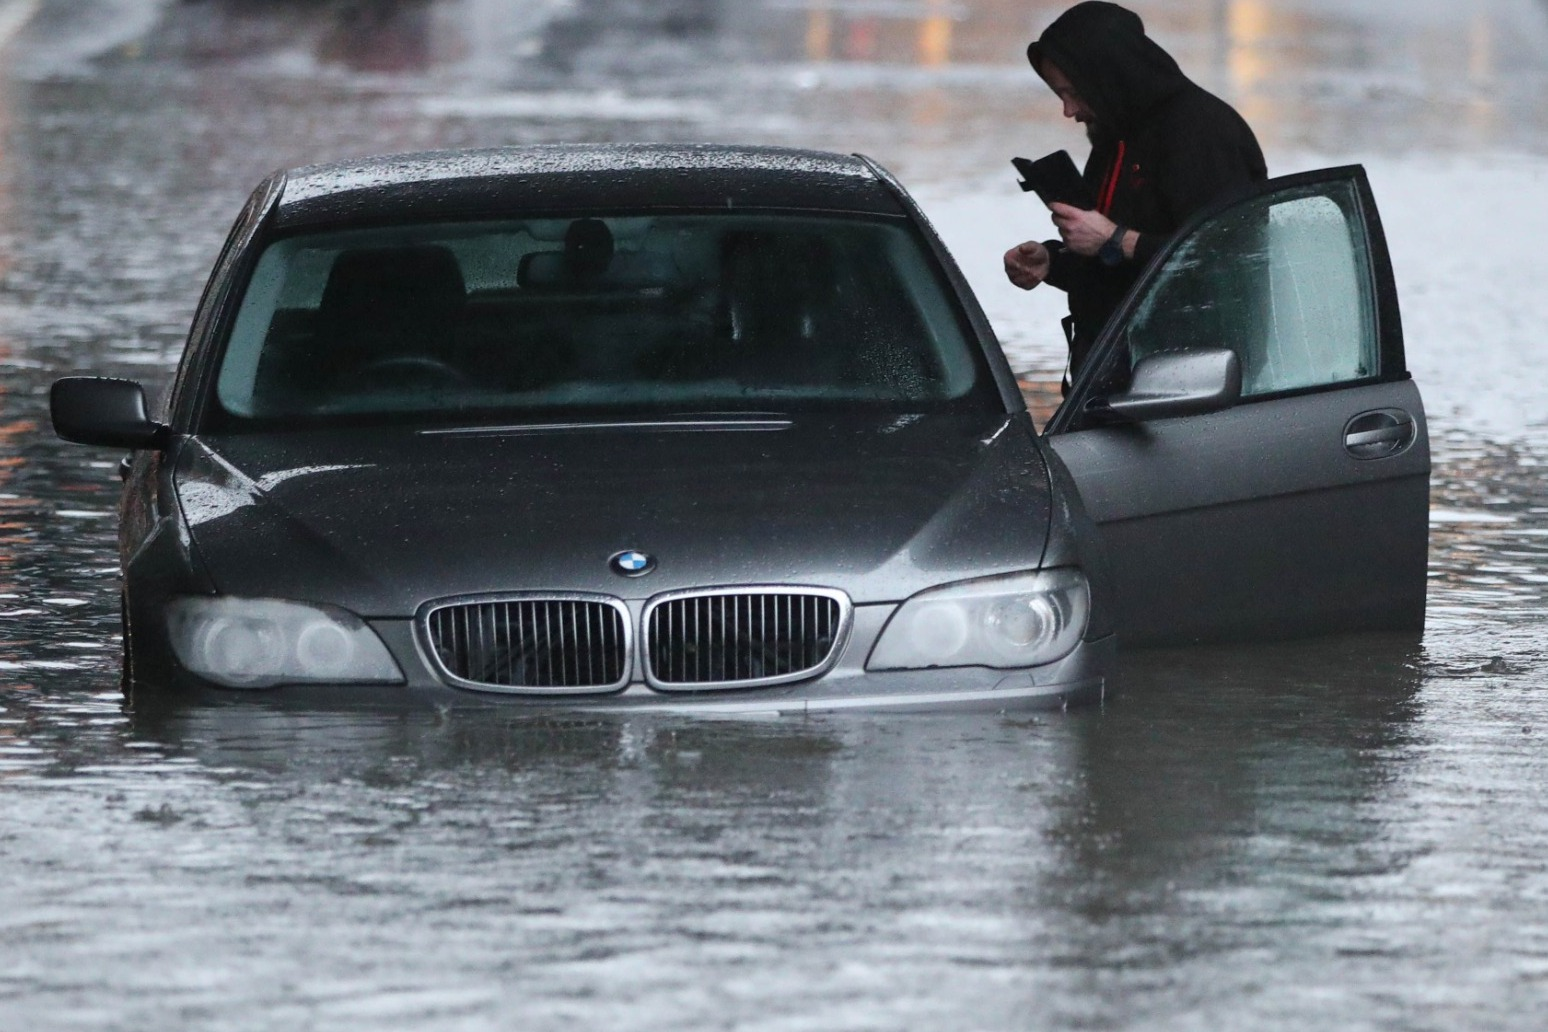 MORE THAN 100 FLOOD WARNINGS IN PLACE AFTER DELUGE